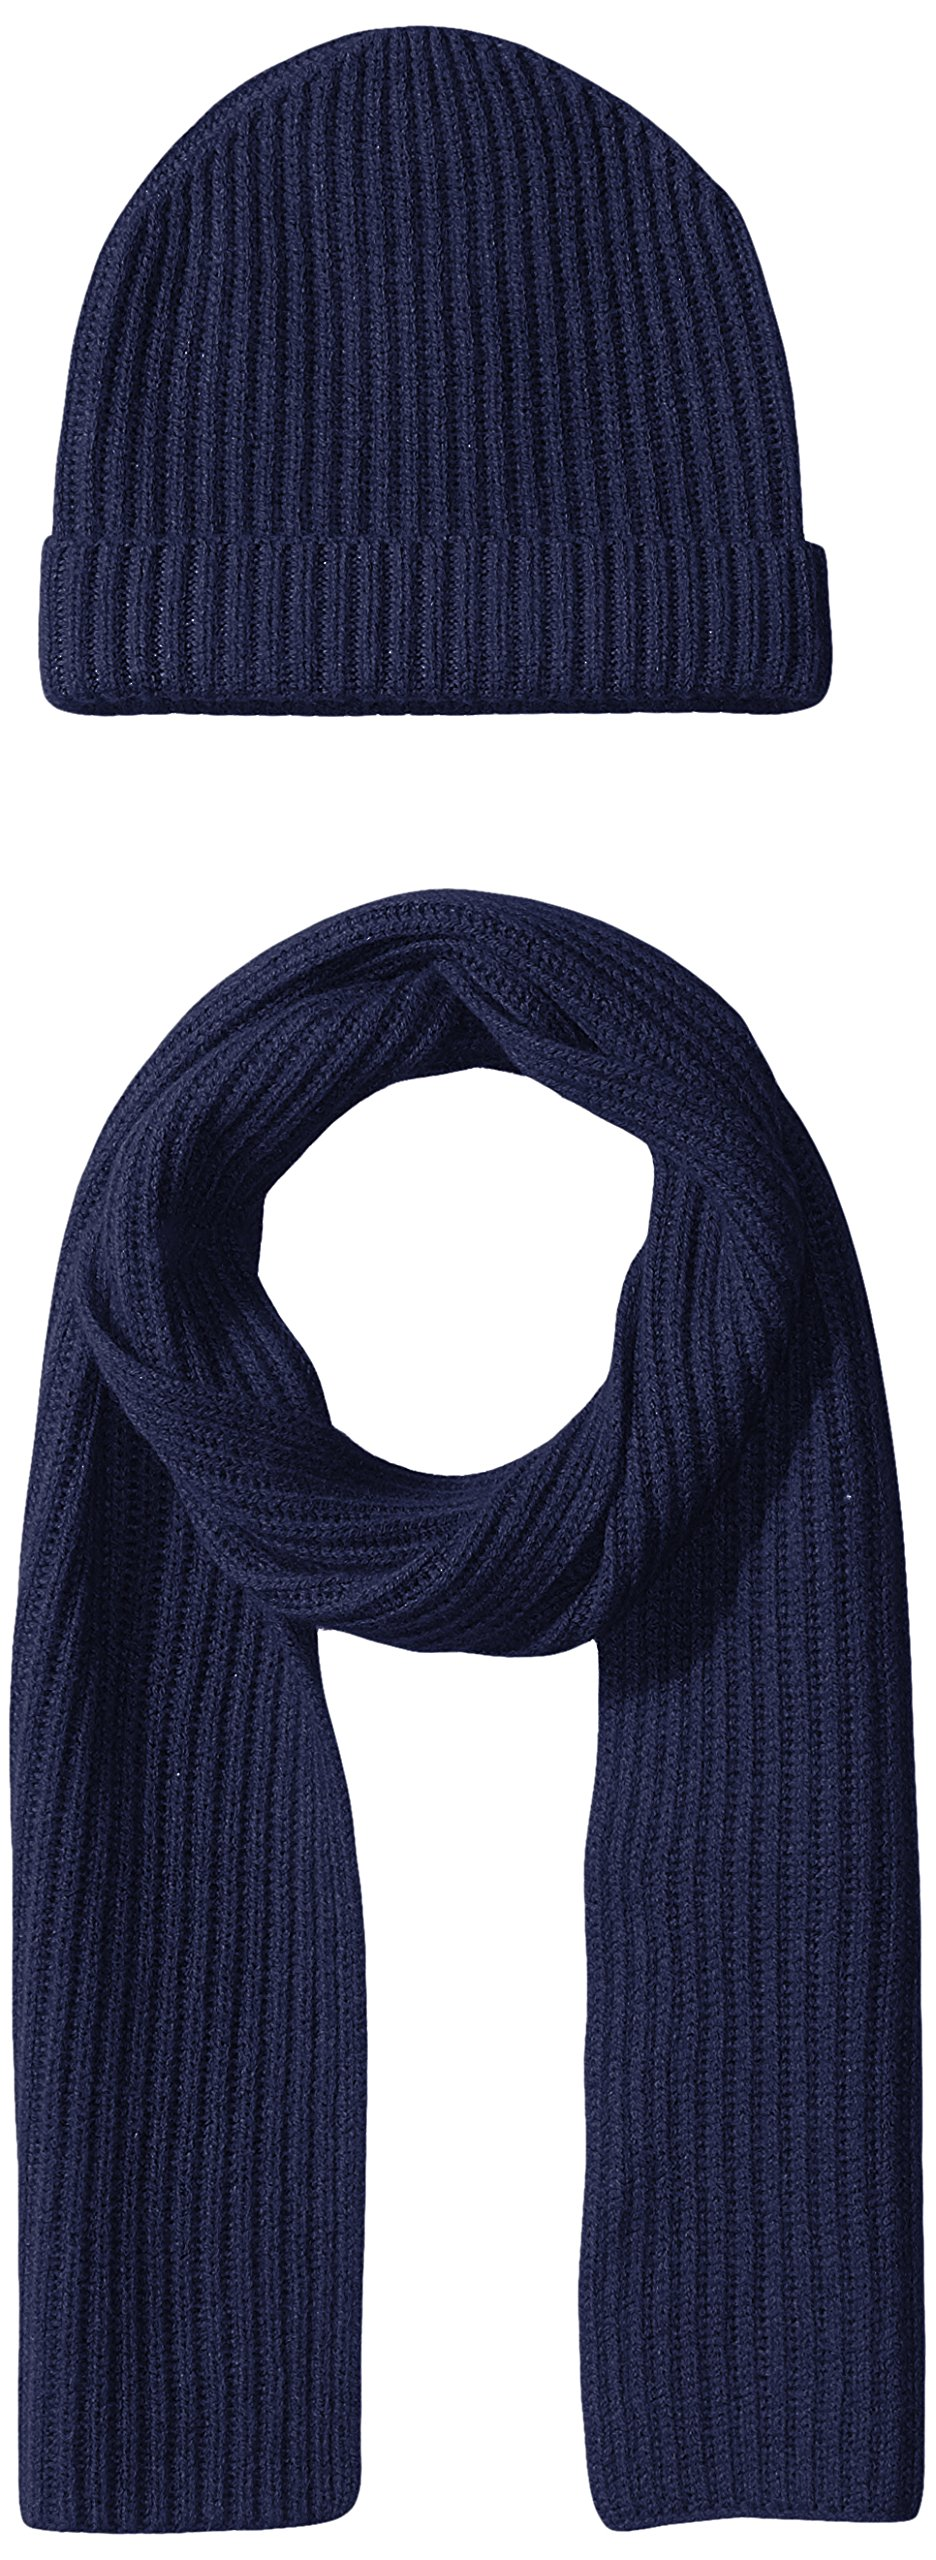 Williams Cashmere Men's 2pc Chunky Hat and Solid Rib Scarf, Midnight Navy, One Size